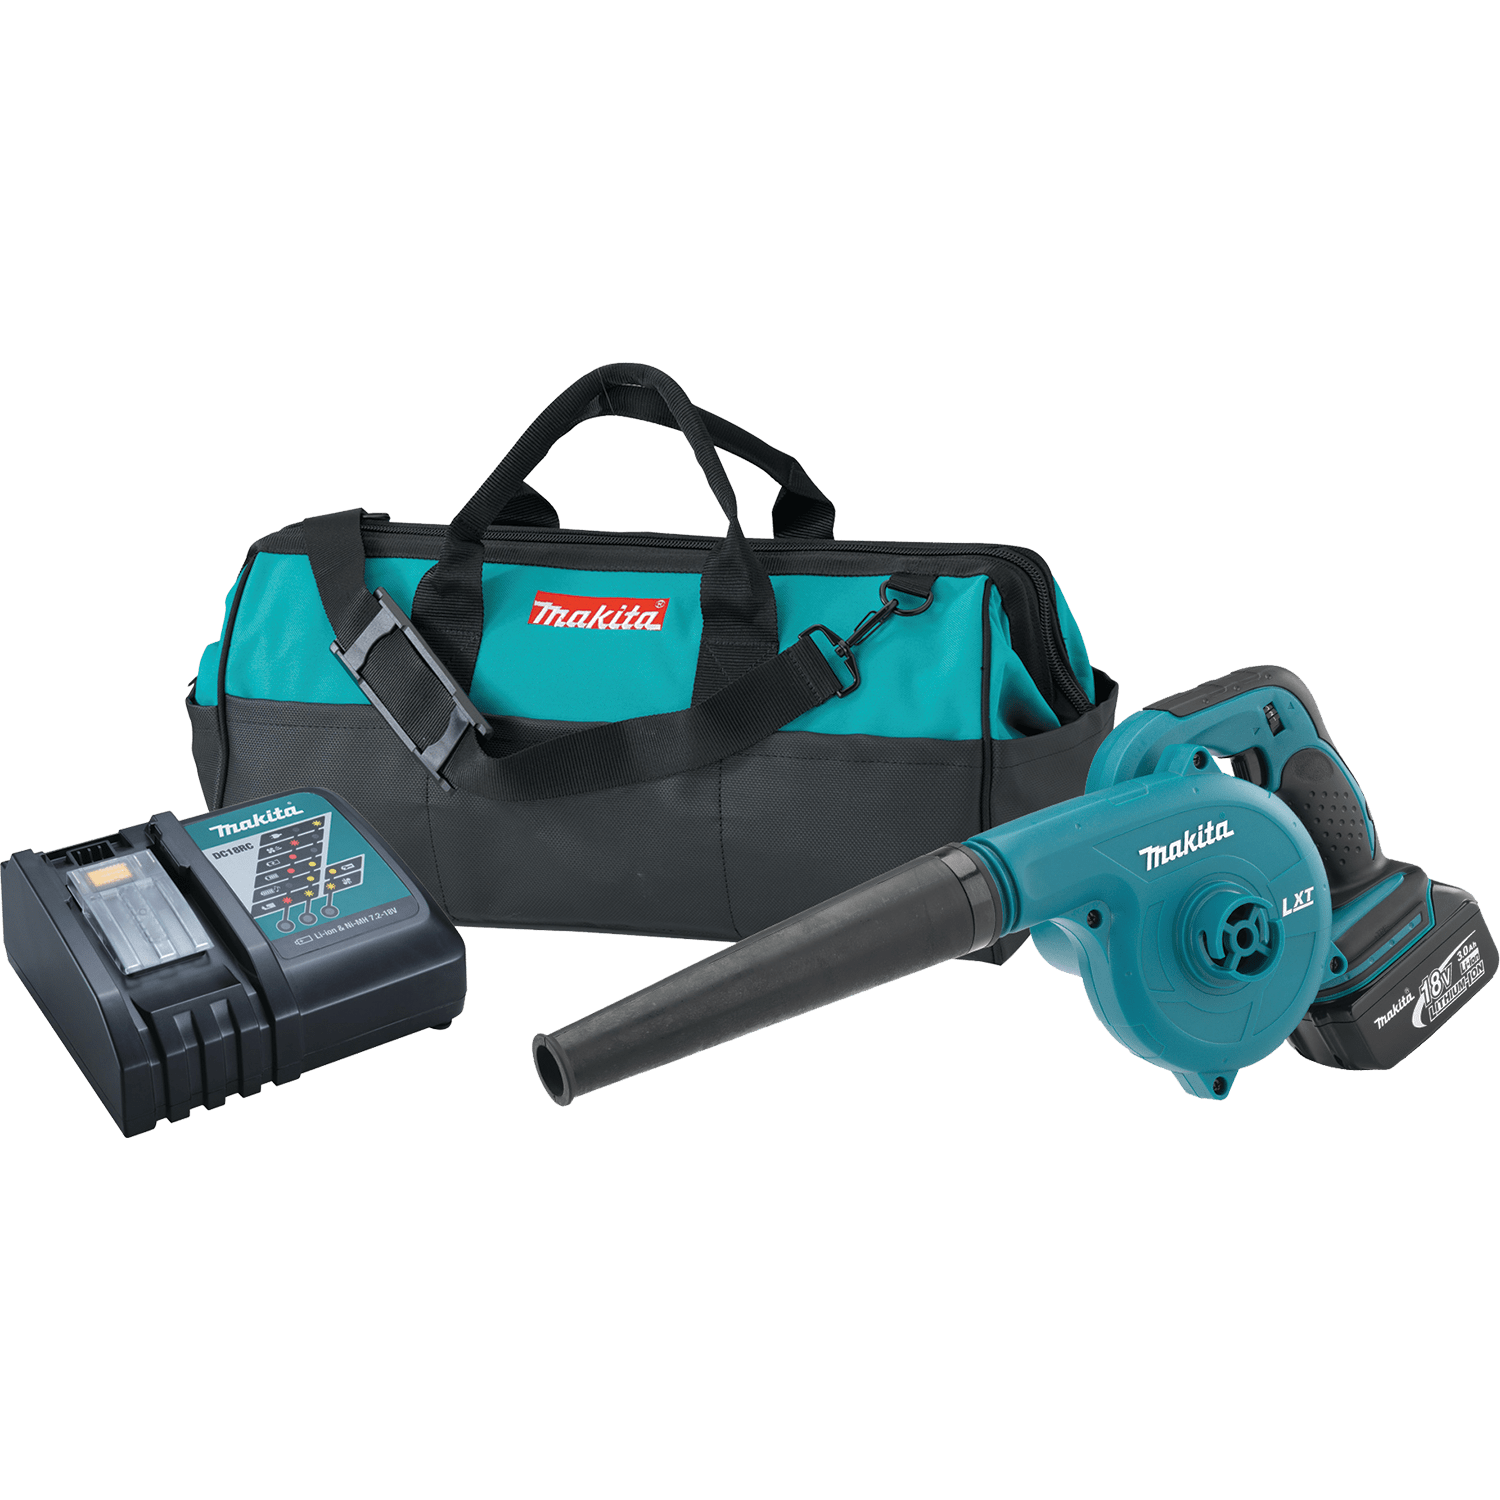 Makita Accuboor Set Makita 18v Set Affordable Makita V Subcompact Black Ud